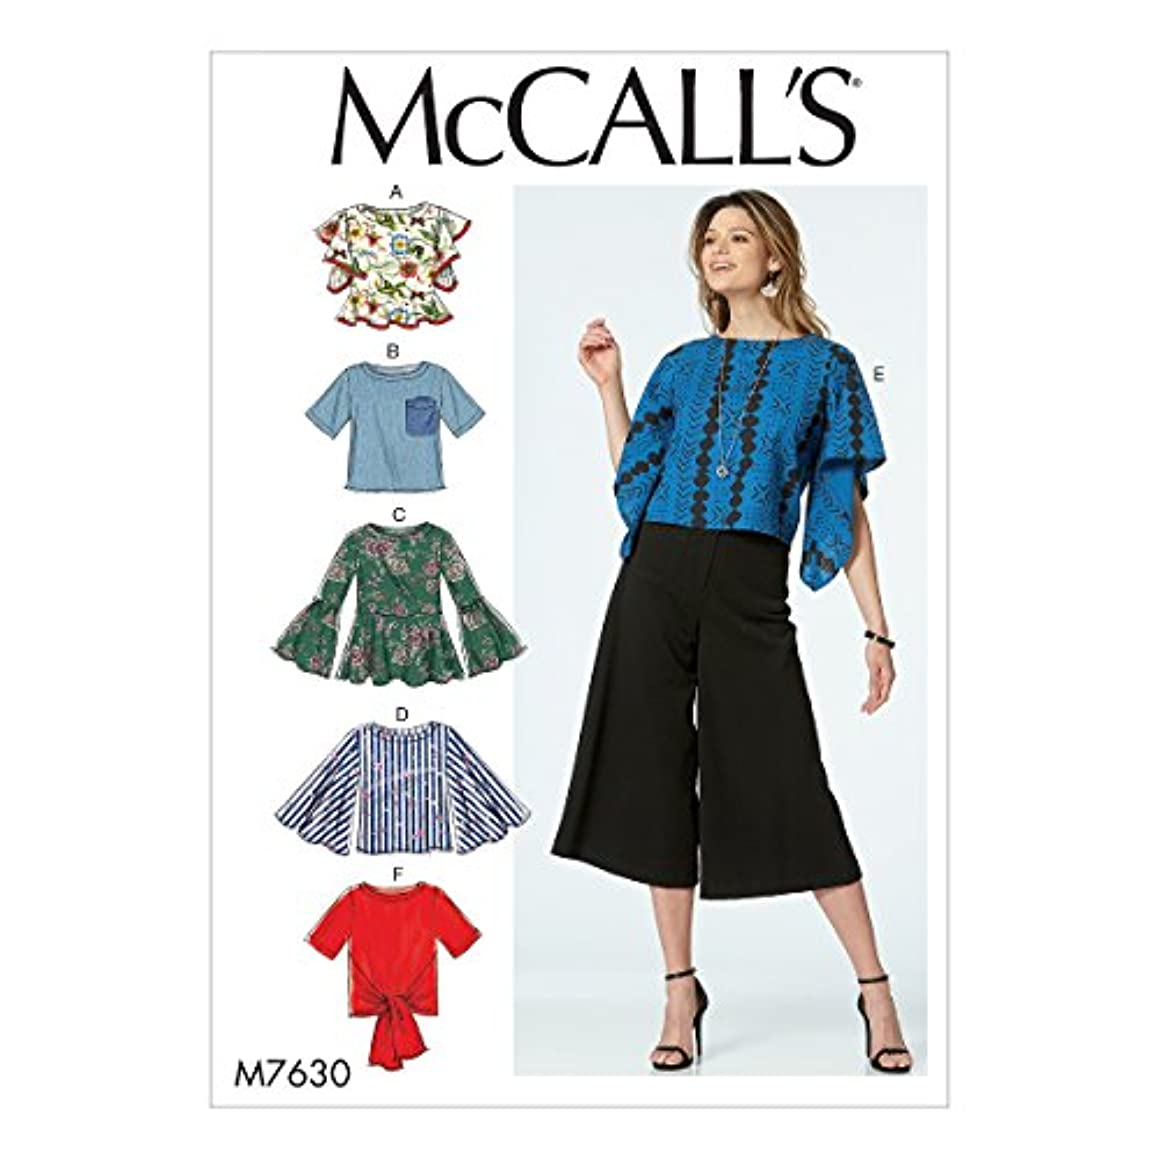 McCall's Patterns M7630E50 Misses Tops with Sleeve and Hem Variations